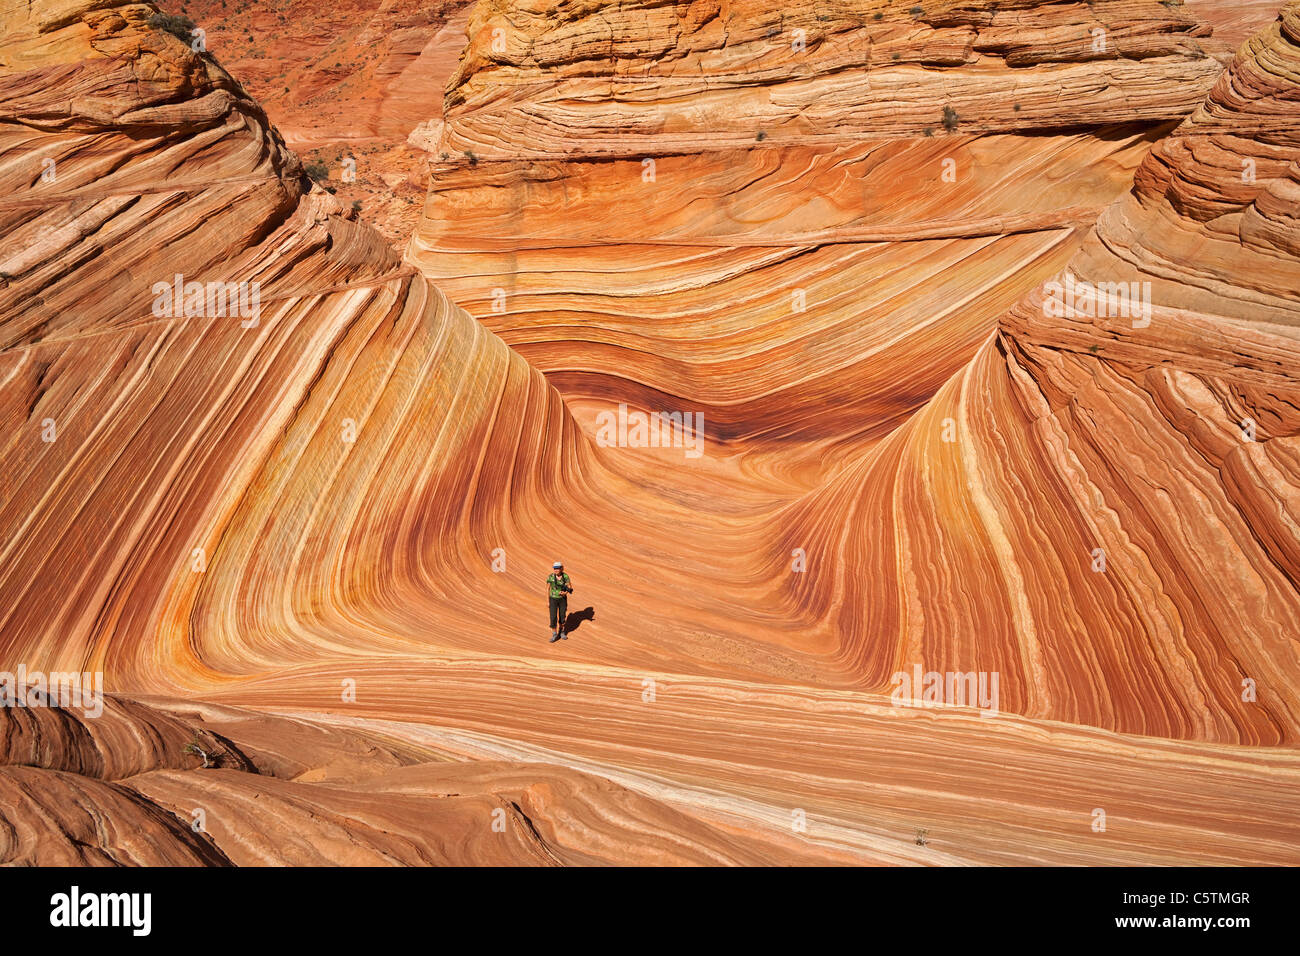 USA, Utah, Coyote Buttes, The wave and single tourist - Stock Image